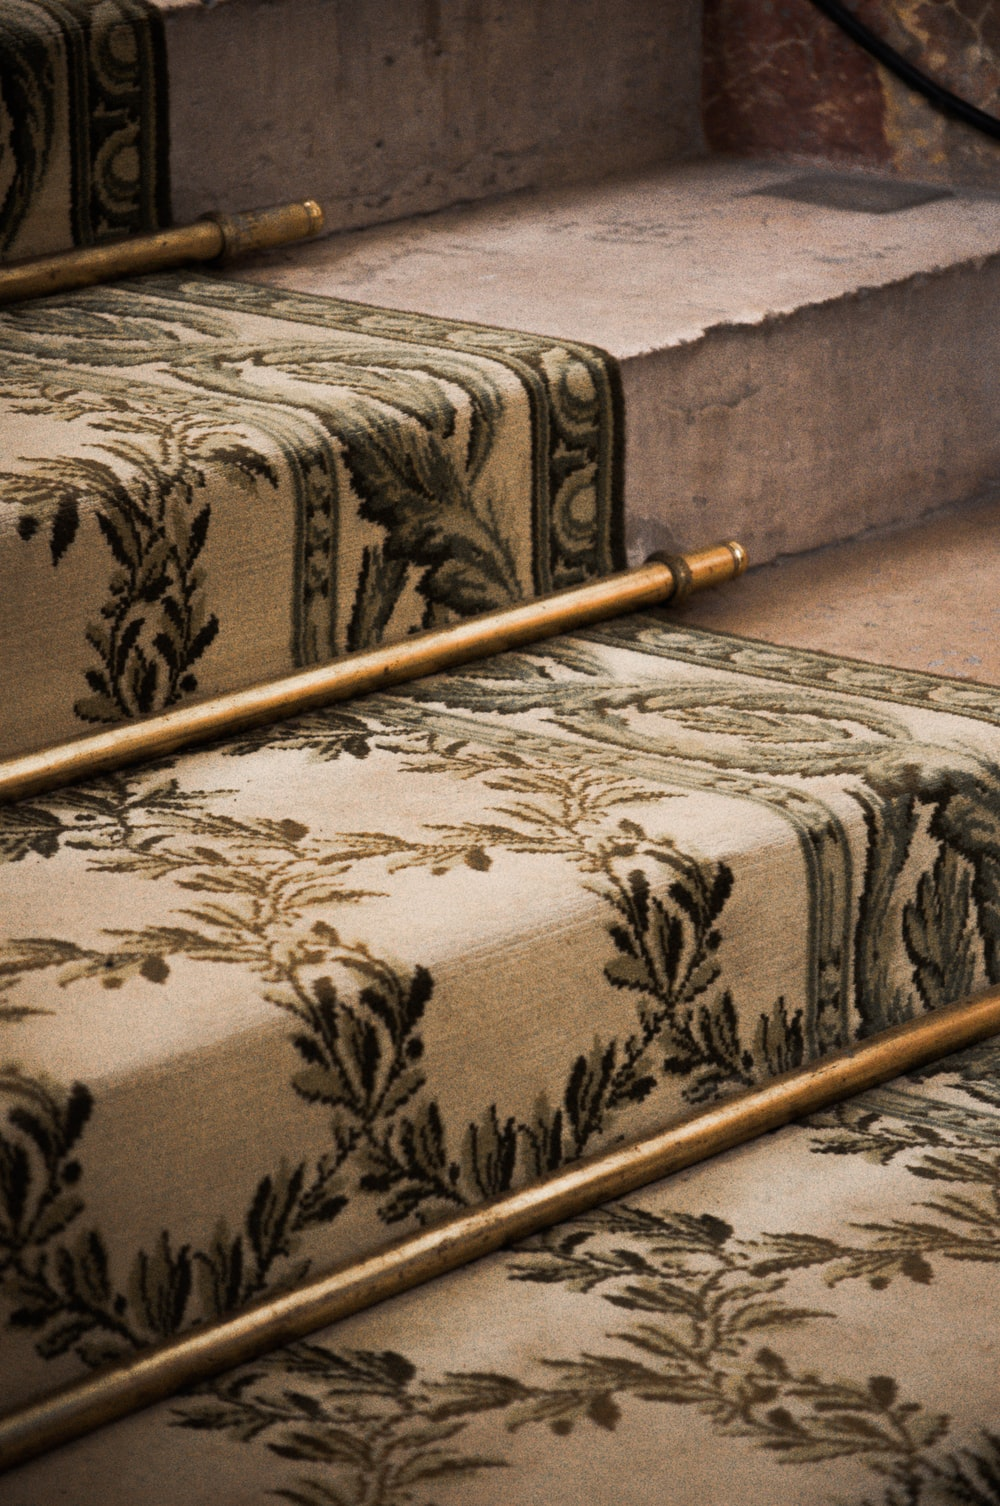 brown wooden stick on brown floral couch